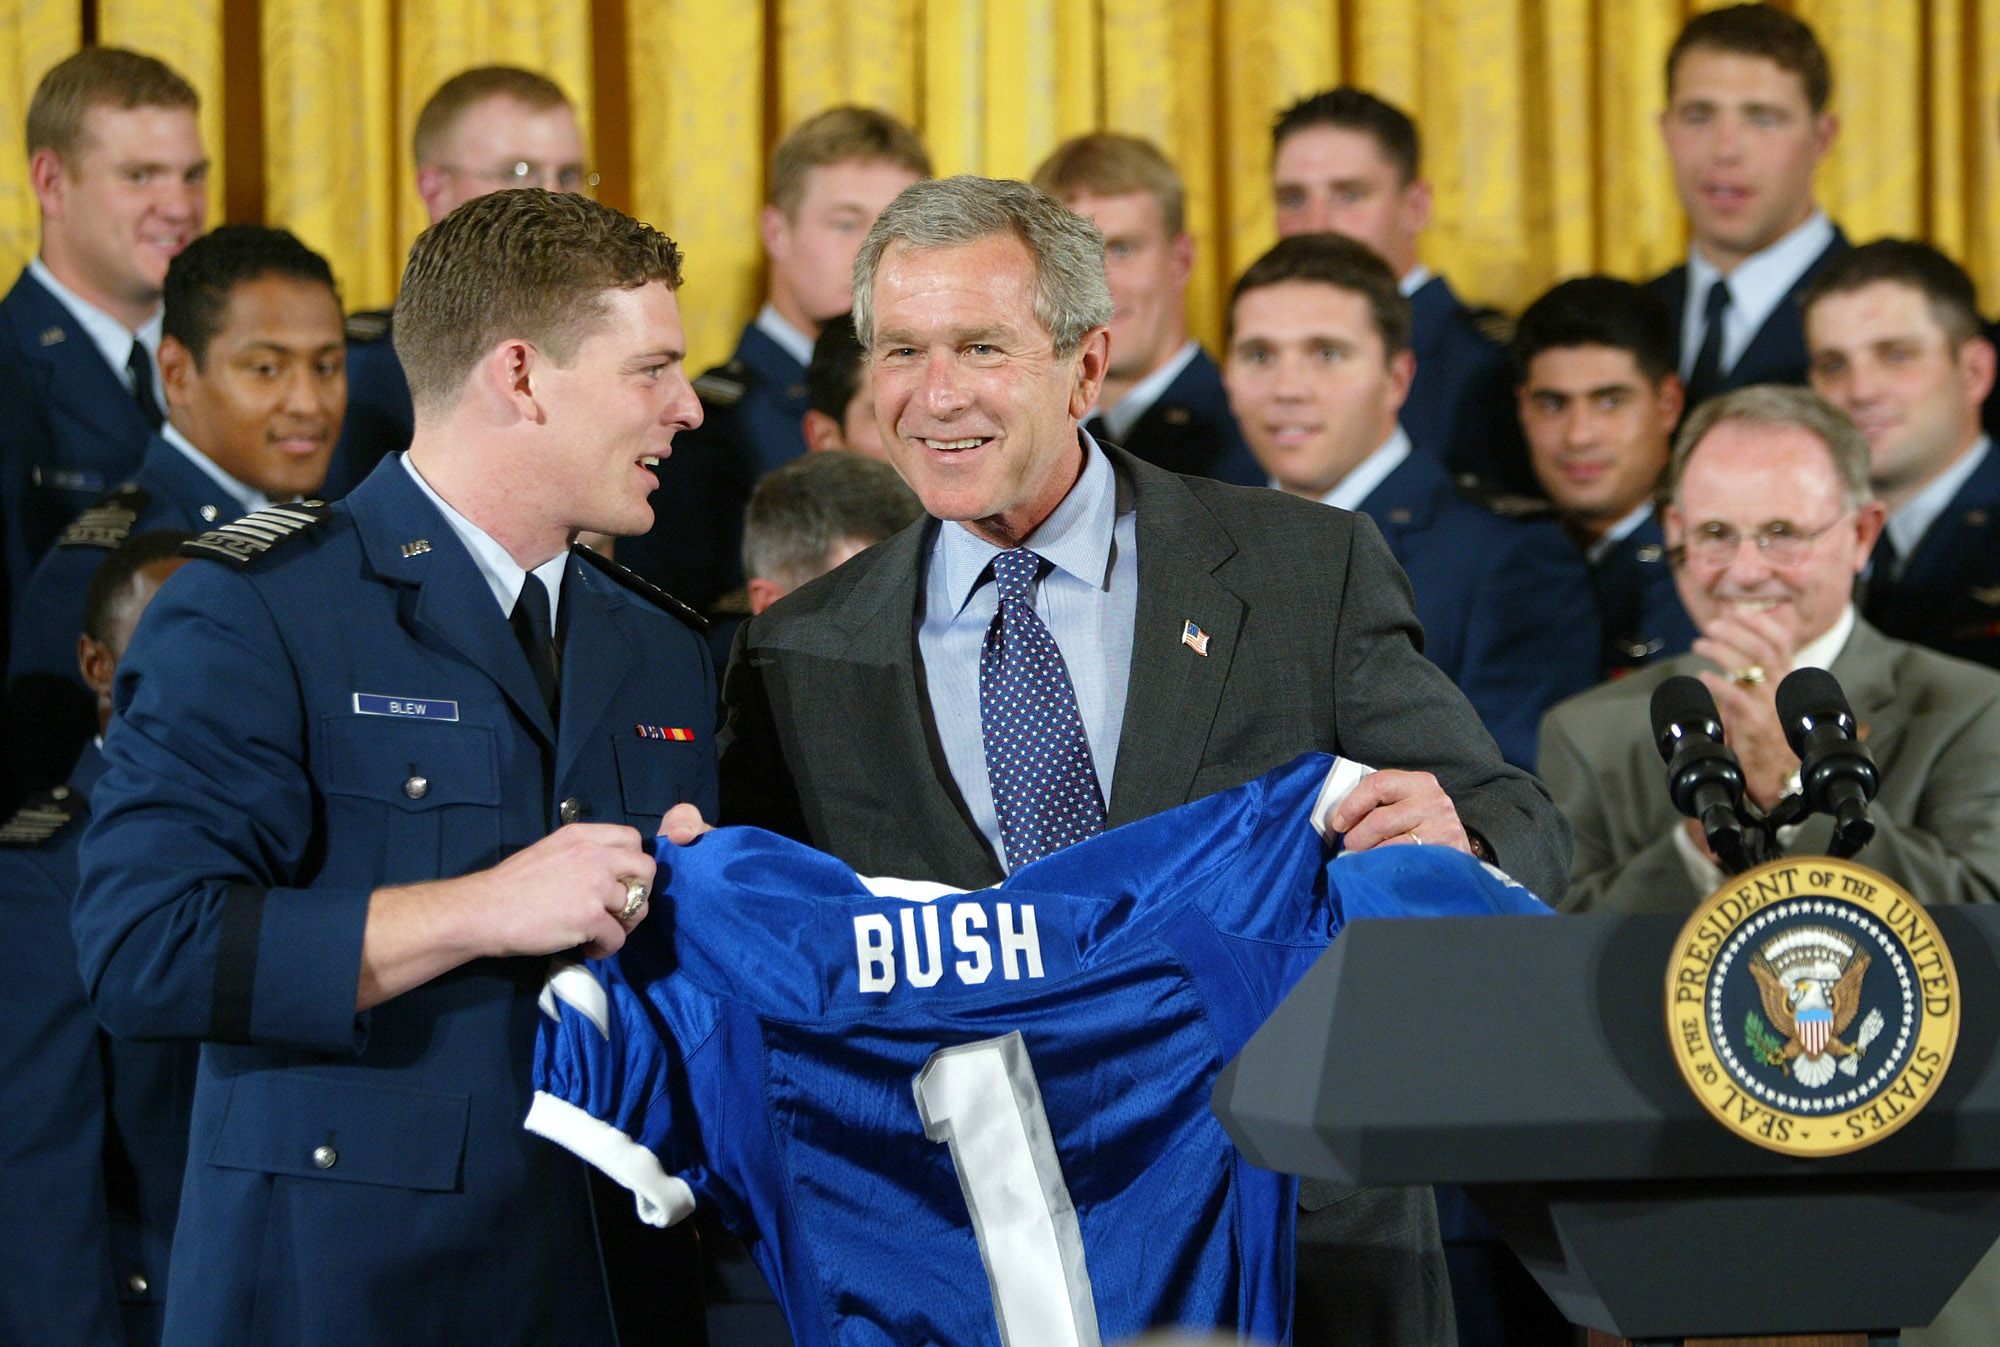 Air Force Academy football team wide receiver Bryan Blew gives President Bush a Falcon jersey during a visit to the East Room of the White House, Friday, May 16, 2003. It is the sixth straight year the Air Force Academy, in Colorado Springs, Colo., has won the commander in chief's trophy which is awarded to the military service academy with the best record against the other two service academies. Head Football Coach Fisher DeBerry applauds at right. (AP Photo/J. Scott Applewhite)